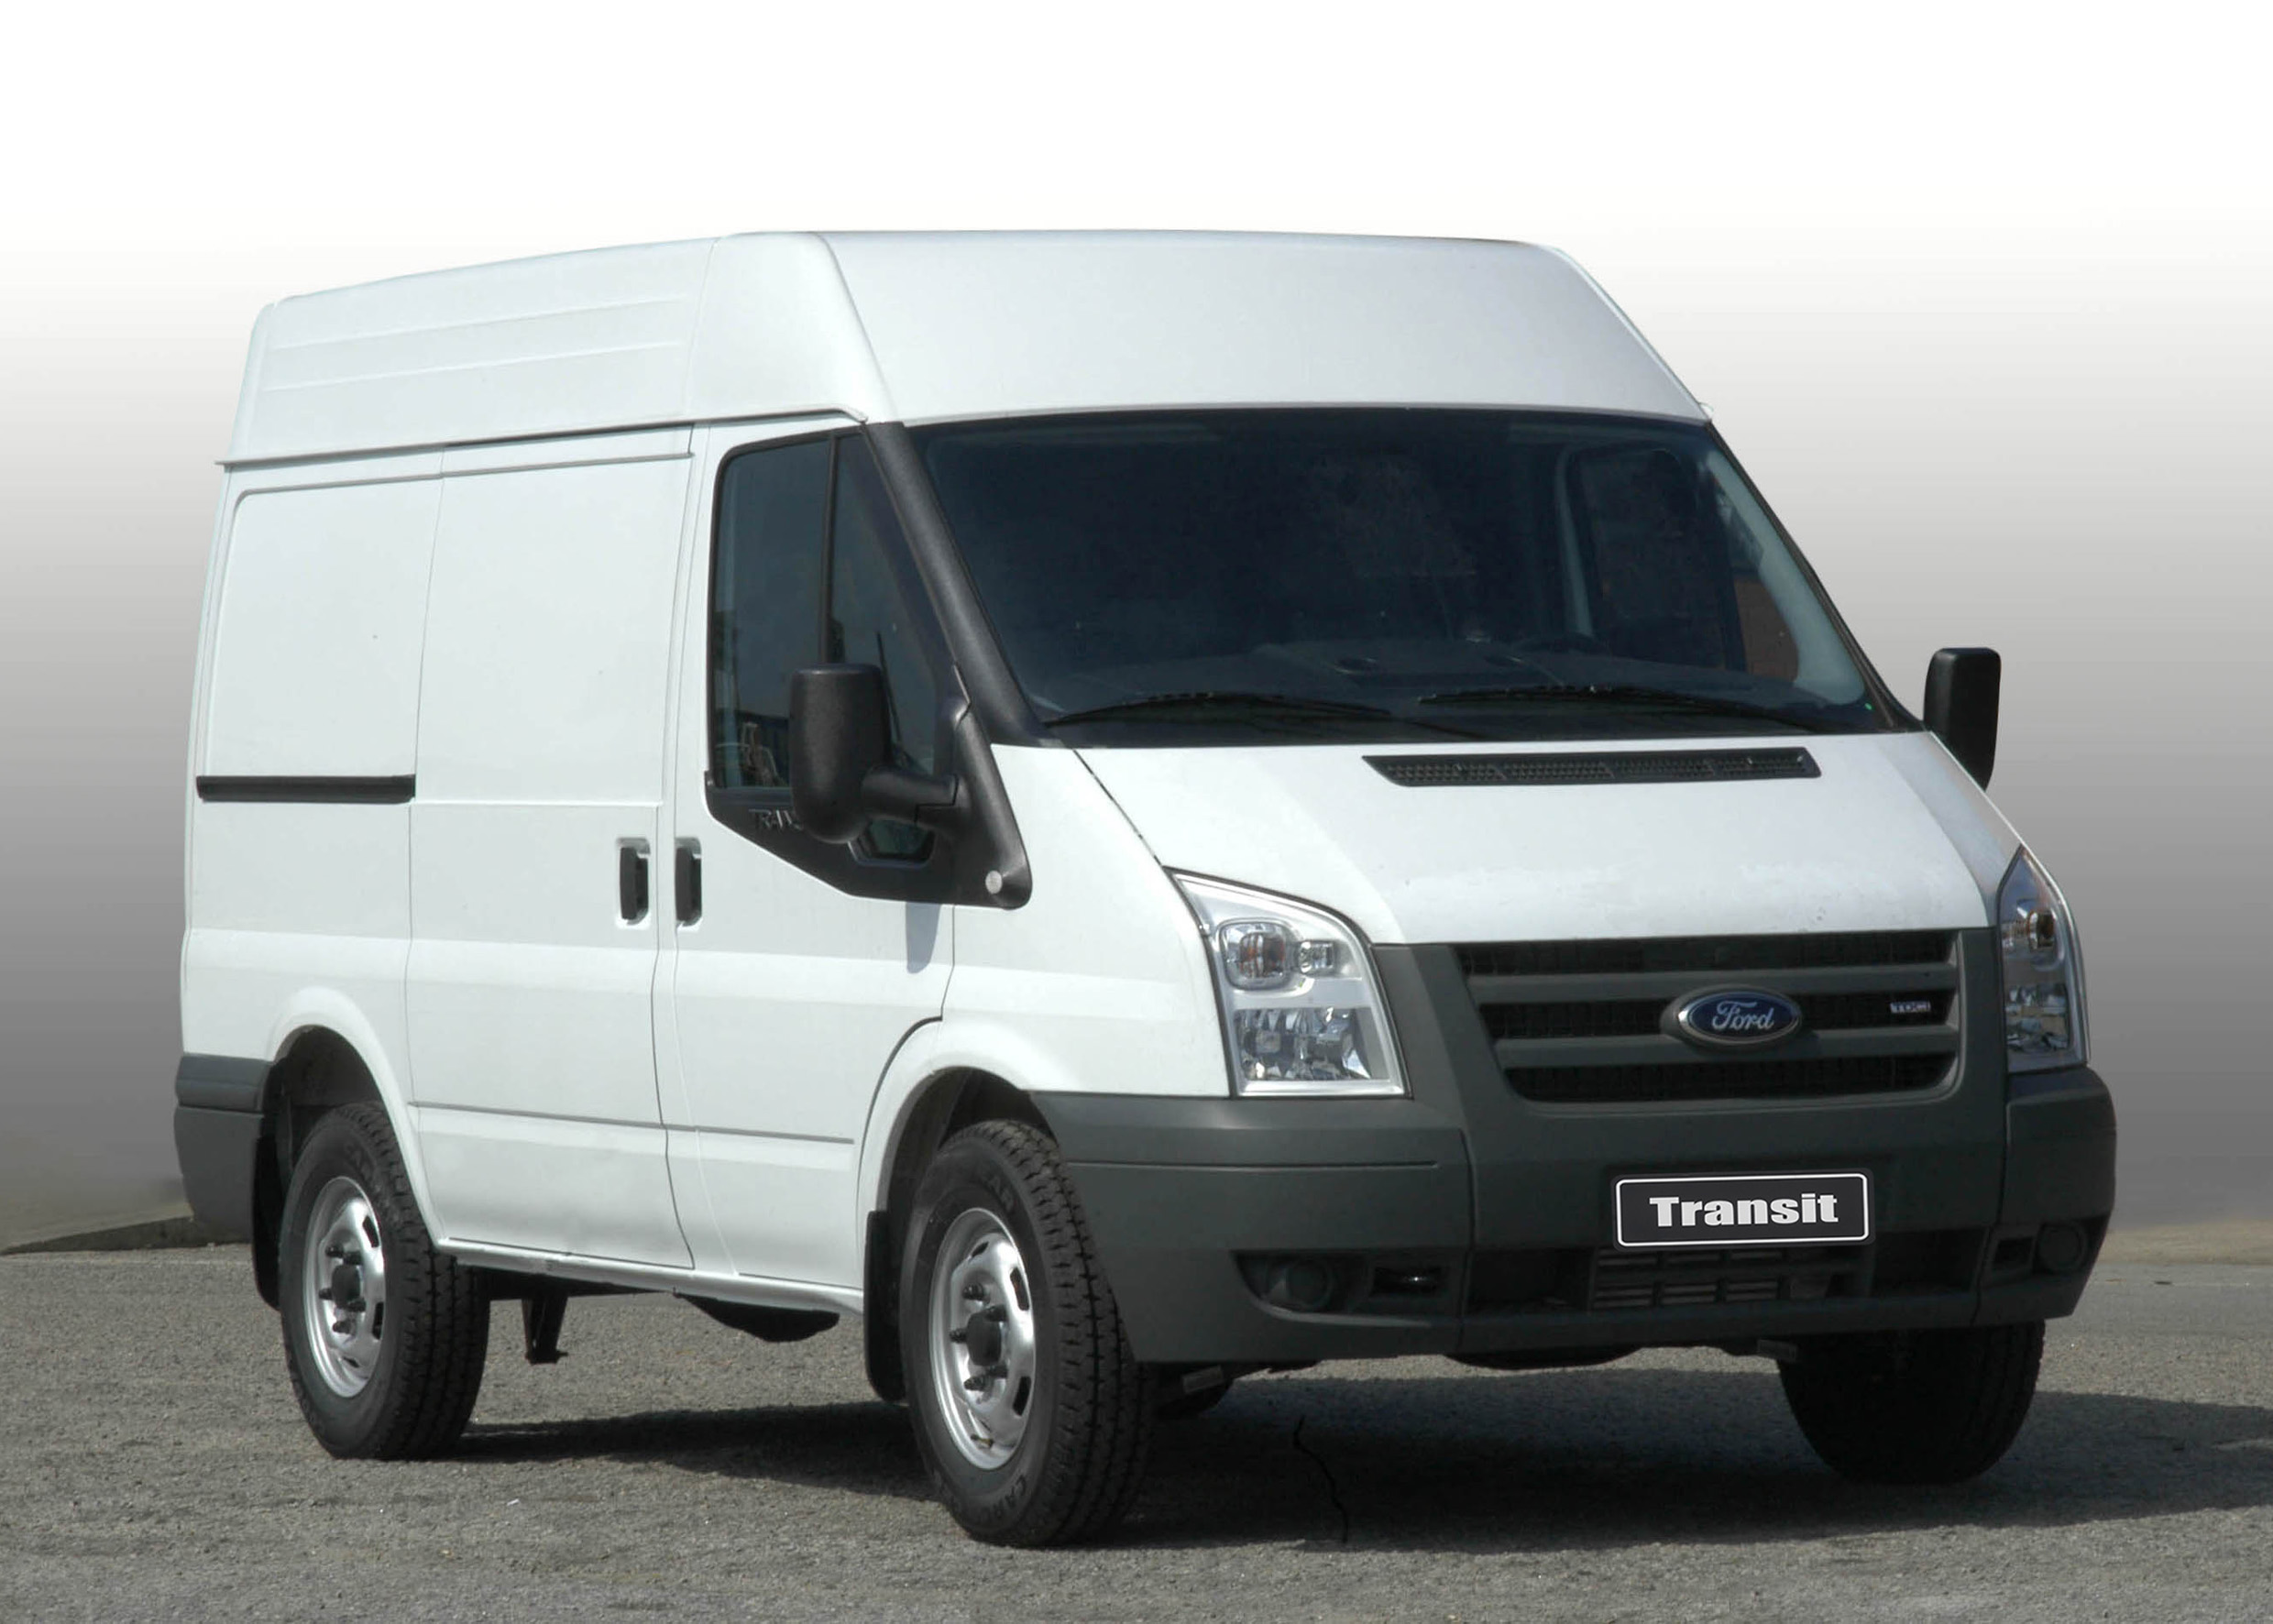 Ford Transit Van >> 3DTuning of Ford Transit SuperSportVan Van 2011 3DTuning.com - unique on-line car configurator ...